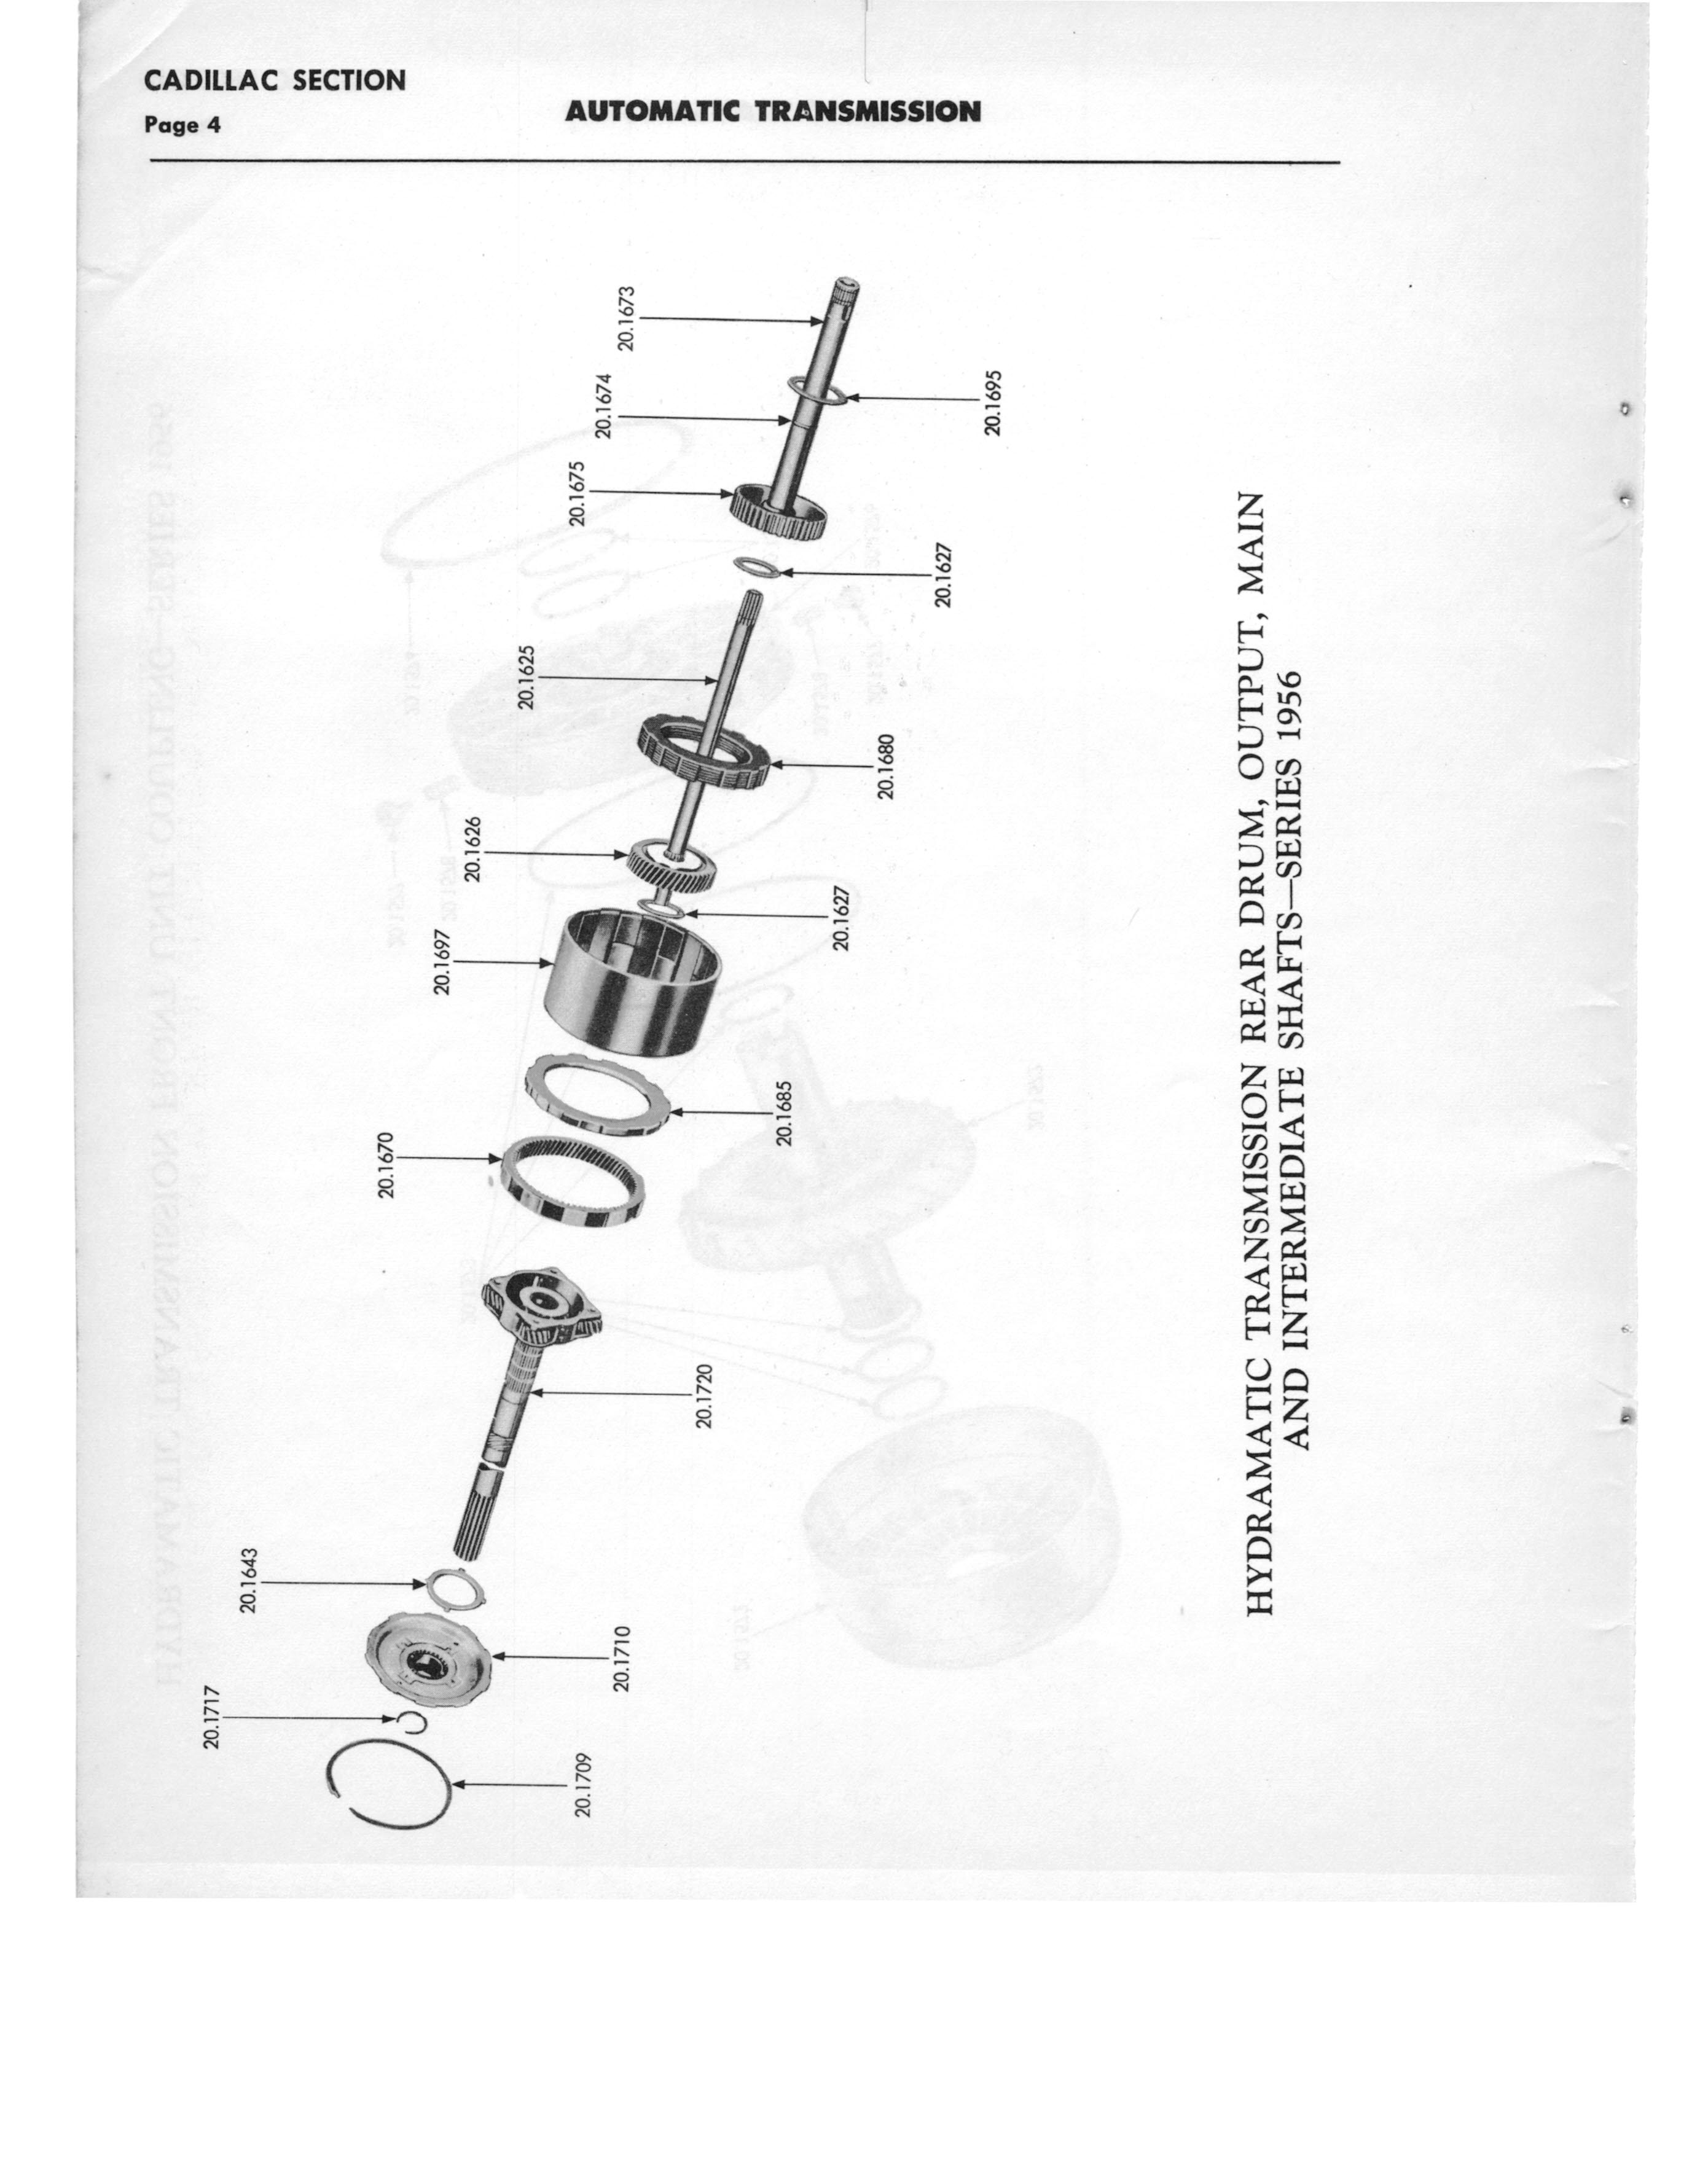 Gm Automatic Transmission Parts Catalog Supplement To A Page 10 Of 97